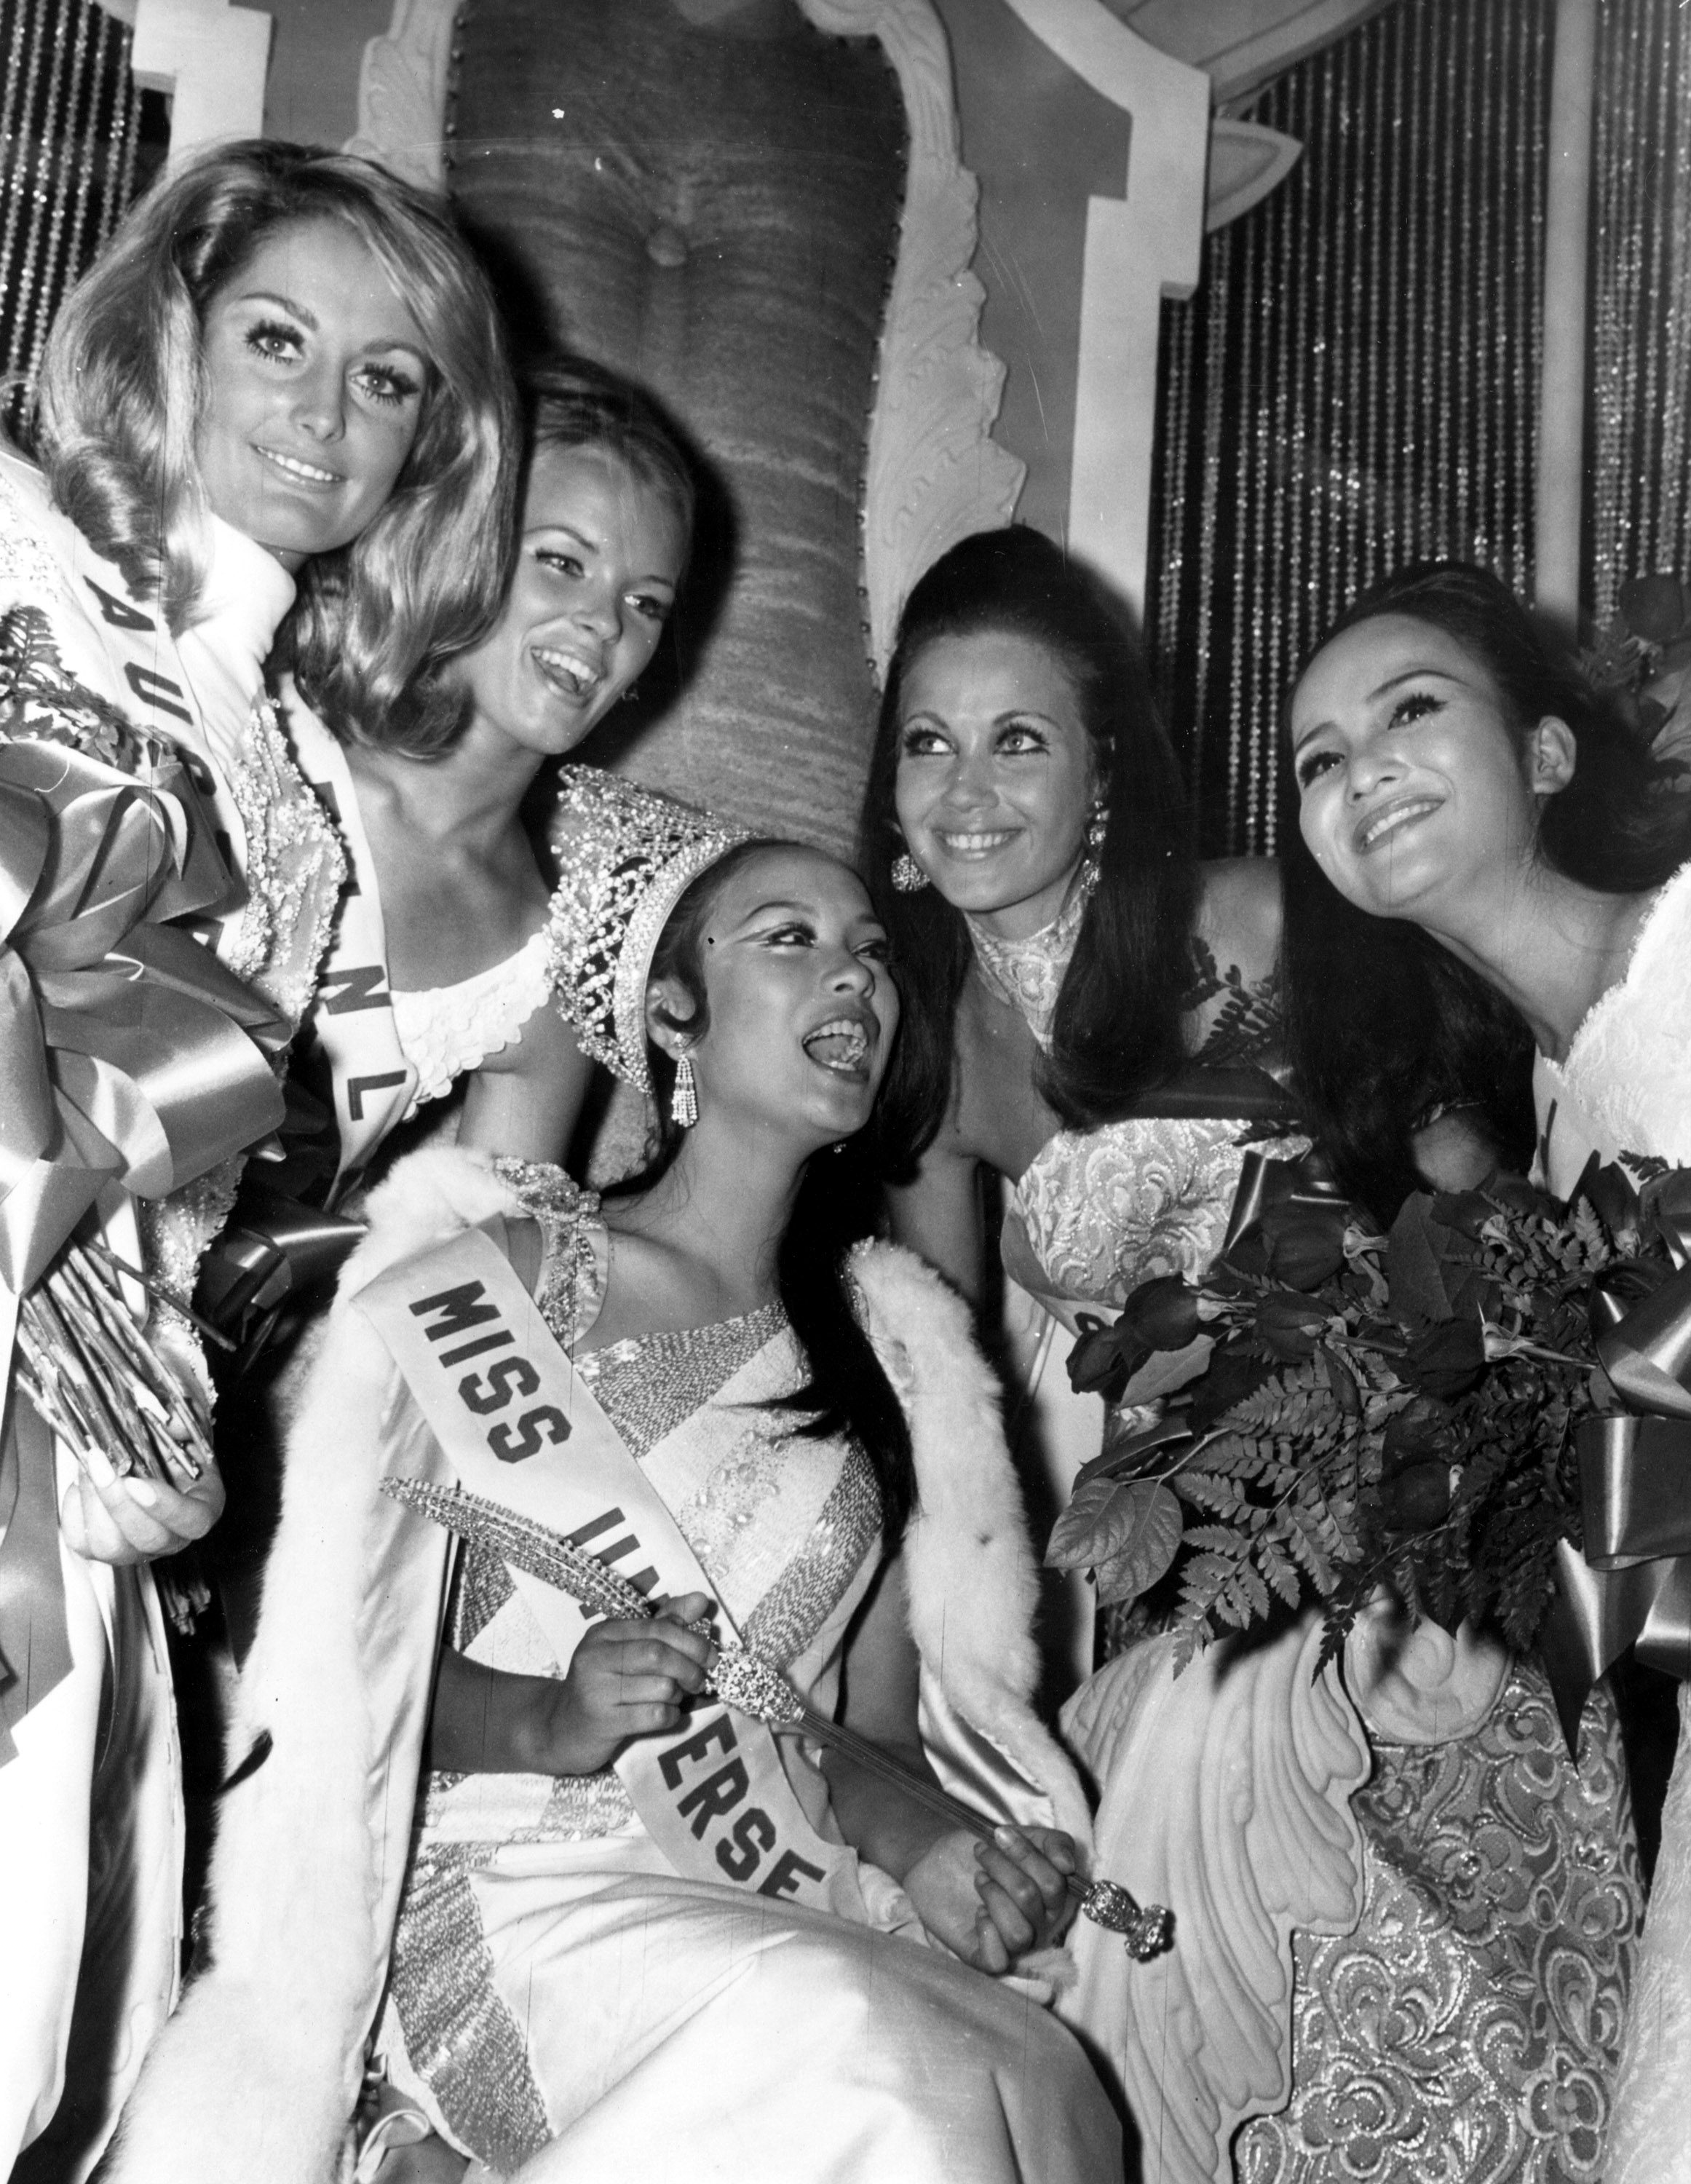 MISS UNIVERSE 1969. Gloria Diaz, Miss Universe 1969, is surrounded by well-wishers after she is crowned during the 18th edition of the pageant. Photo from Miss Universe Organization